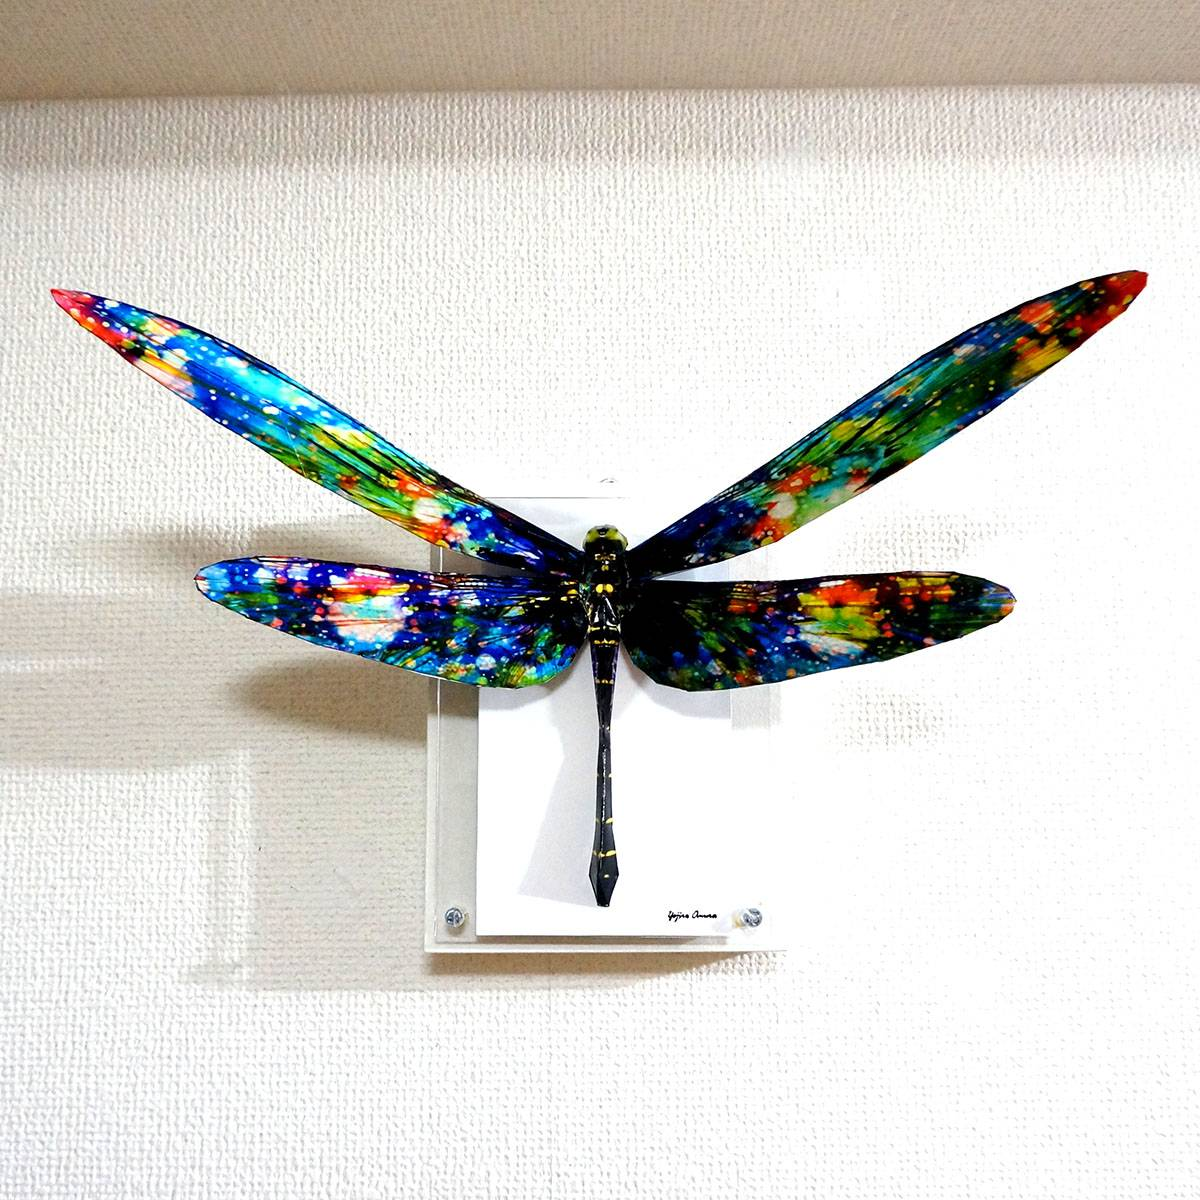 The glittering dragonfly spreads its wings ED:8/10